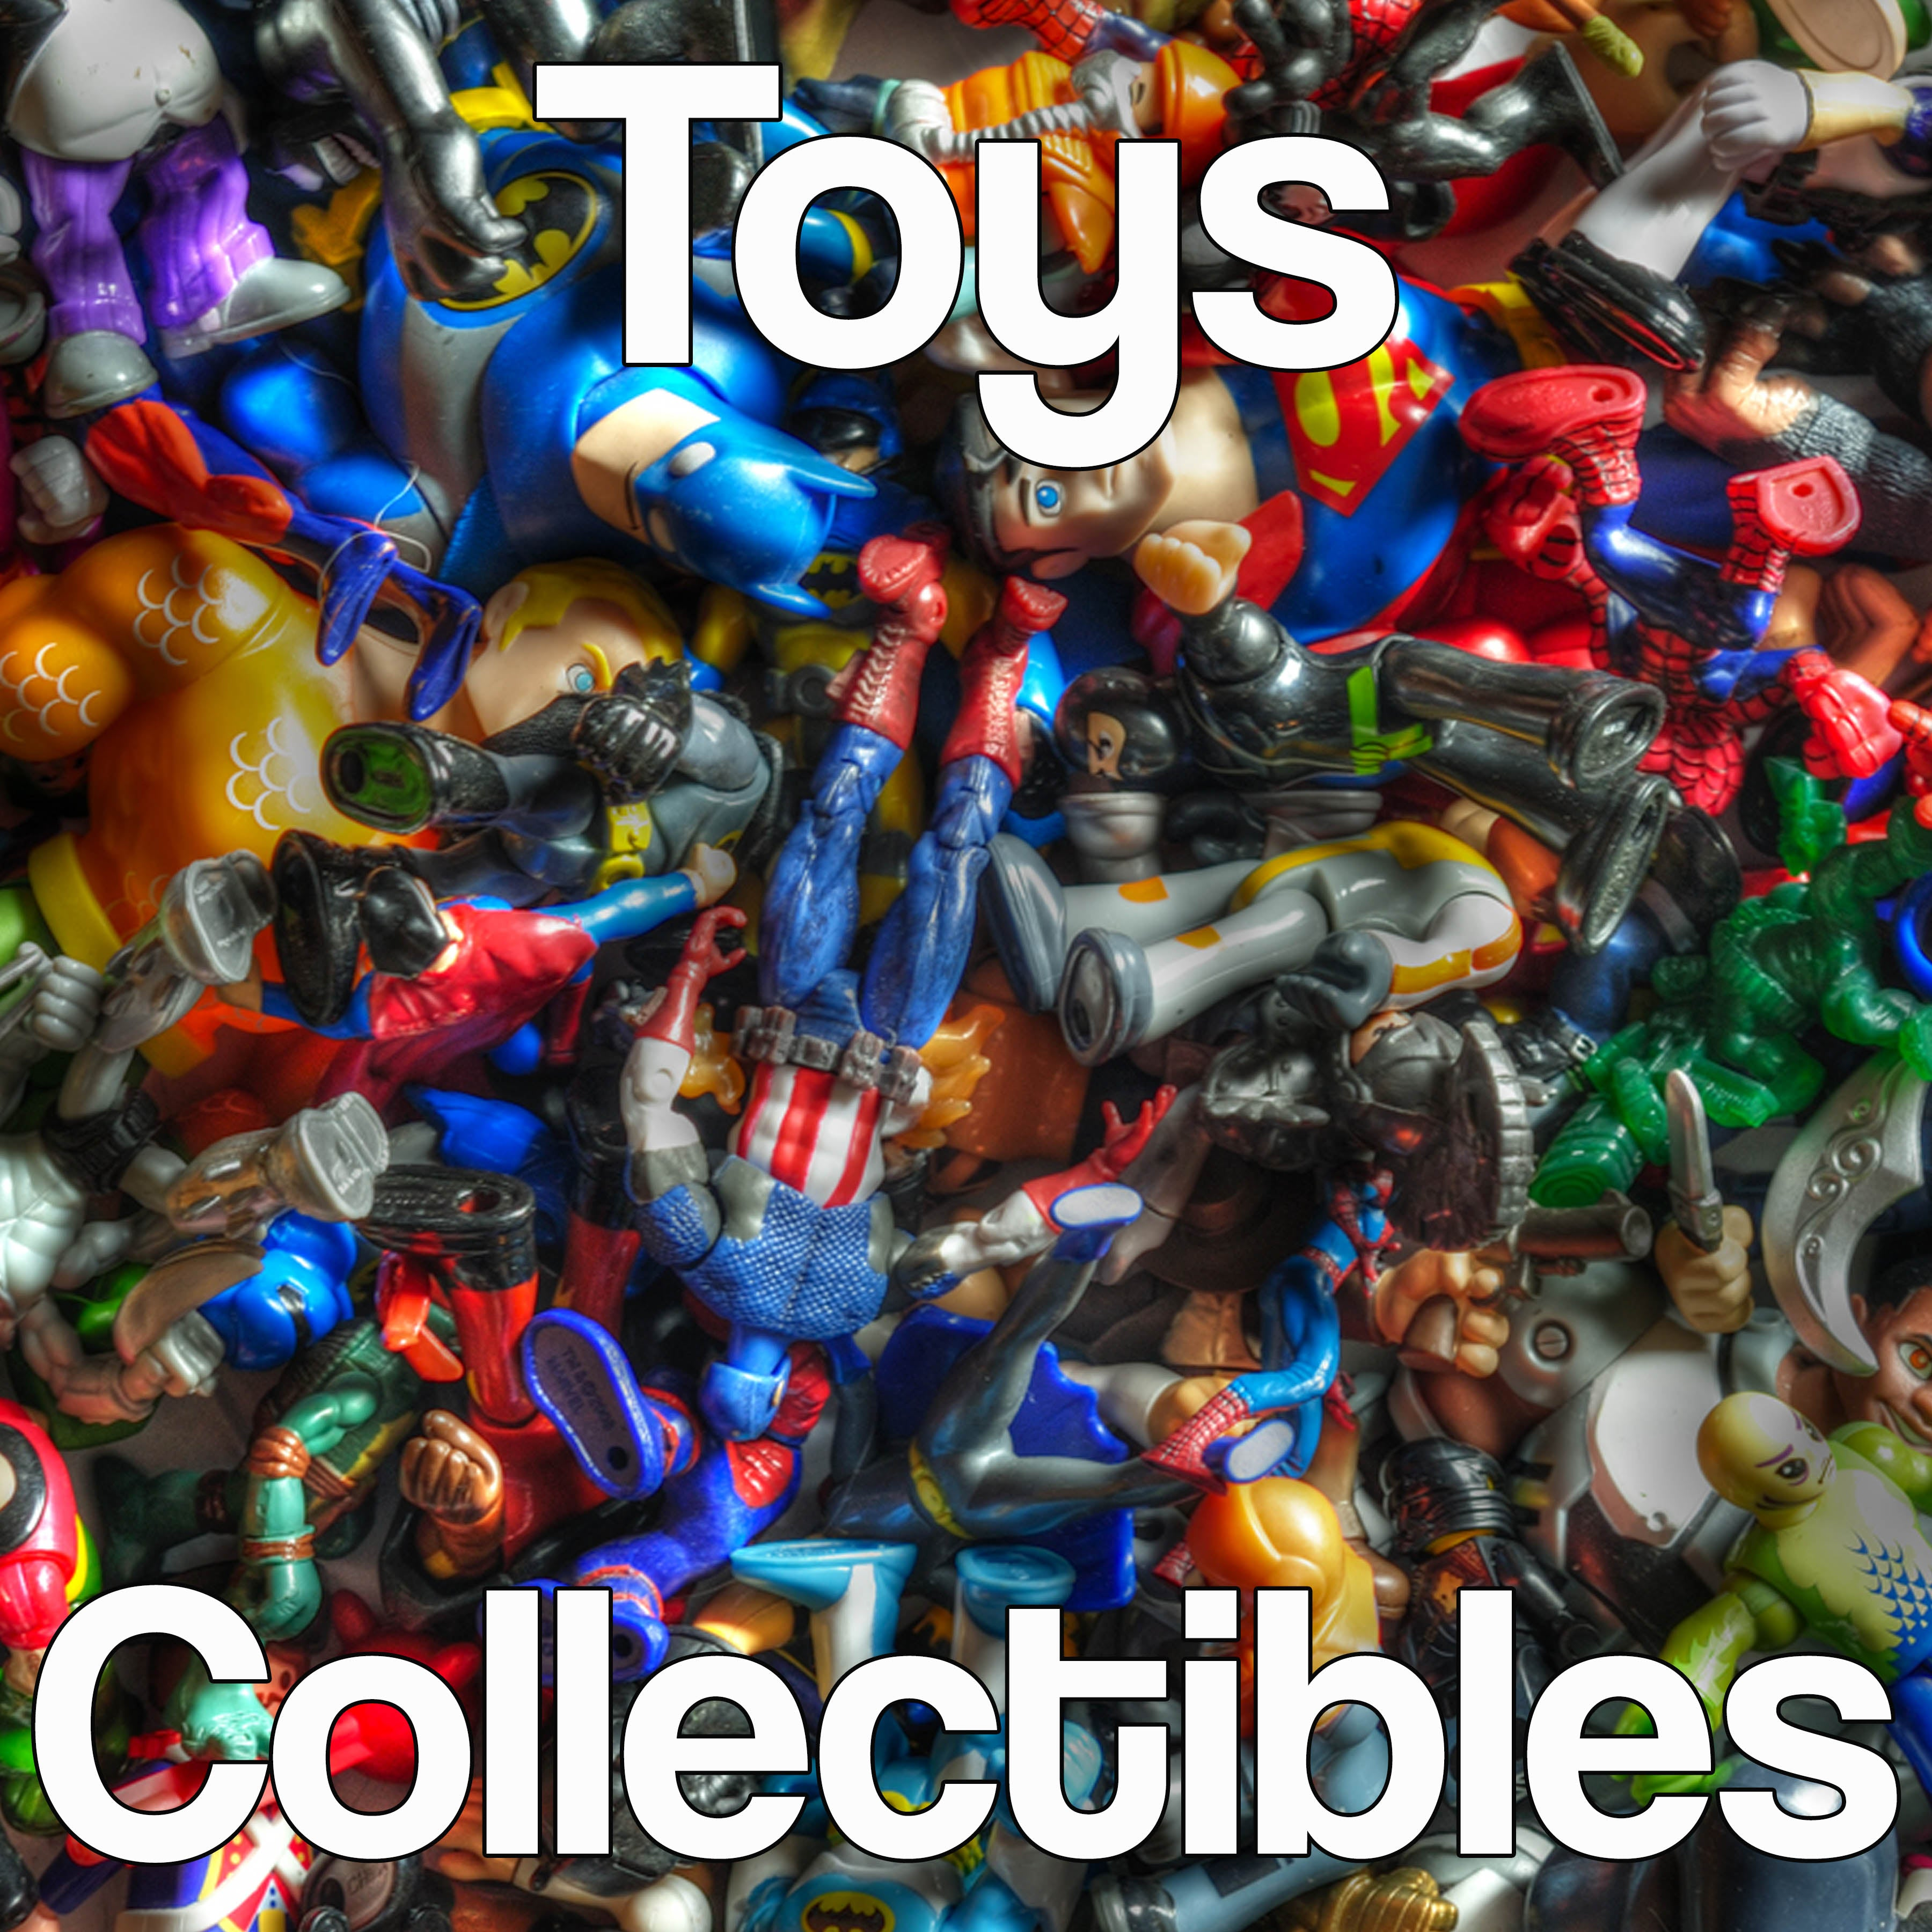 Collectibles